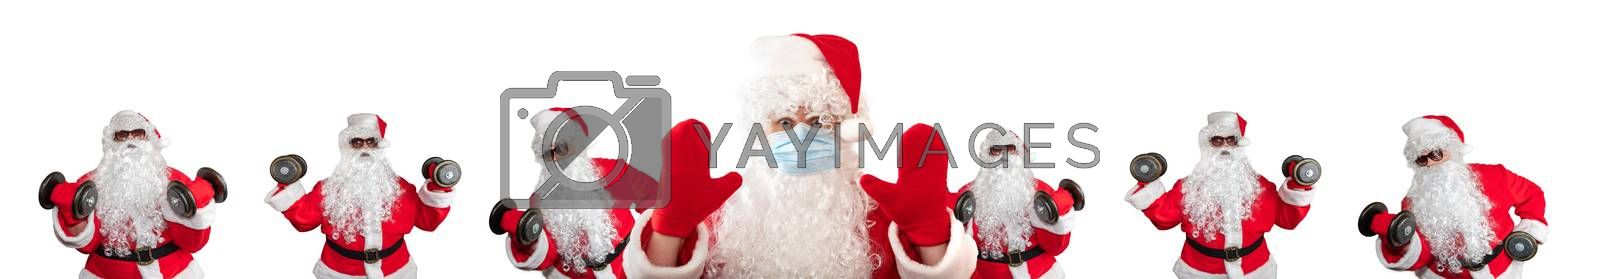 Santa Claus wearing a medical mask, having his both hands up, eyes wide open in warning gesture. Multiple Santas working out in the background behind him. Isolated on white background. Banner size.